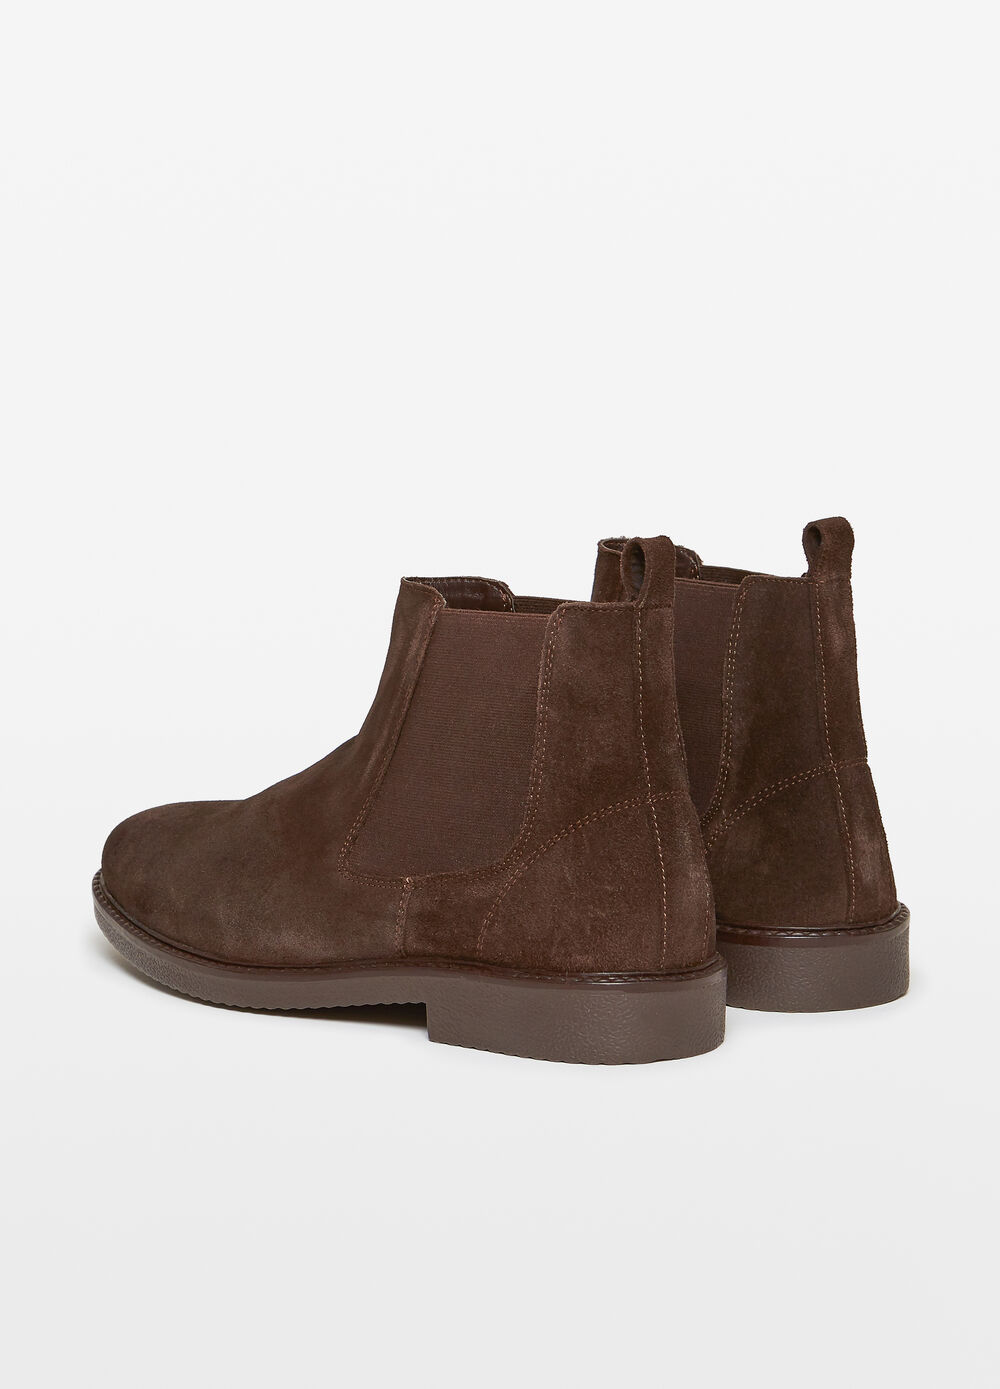 Boots in solid colour leather